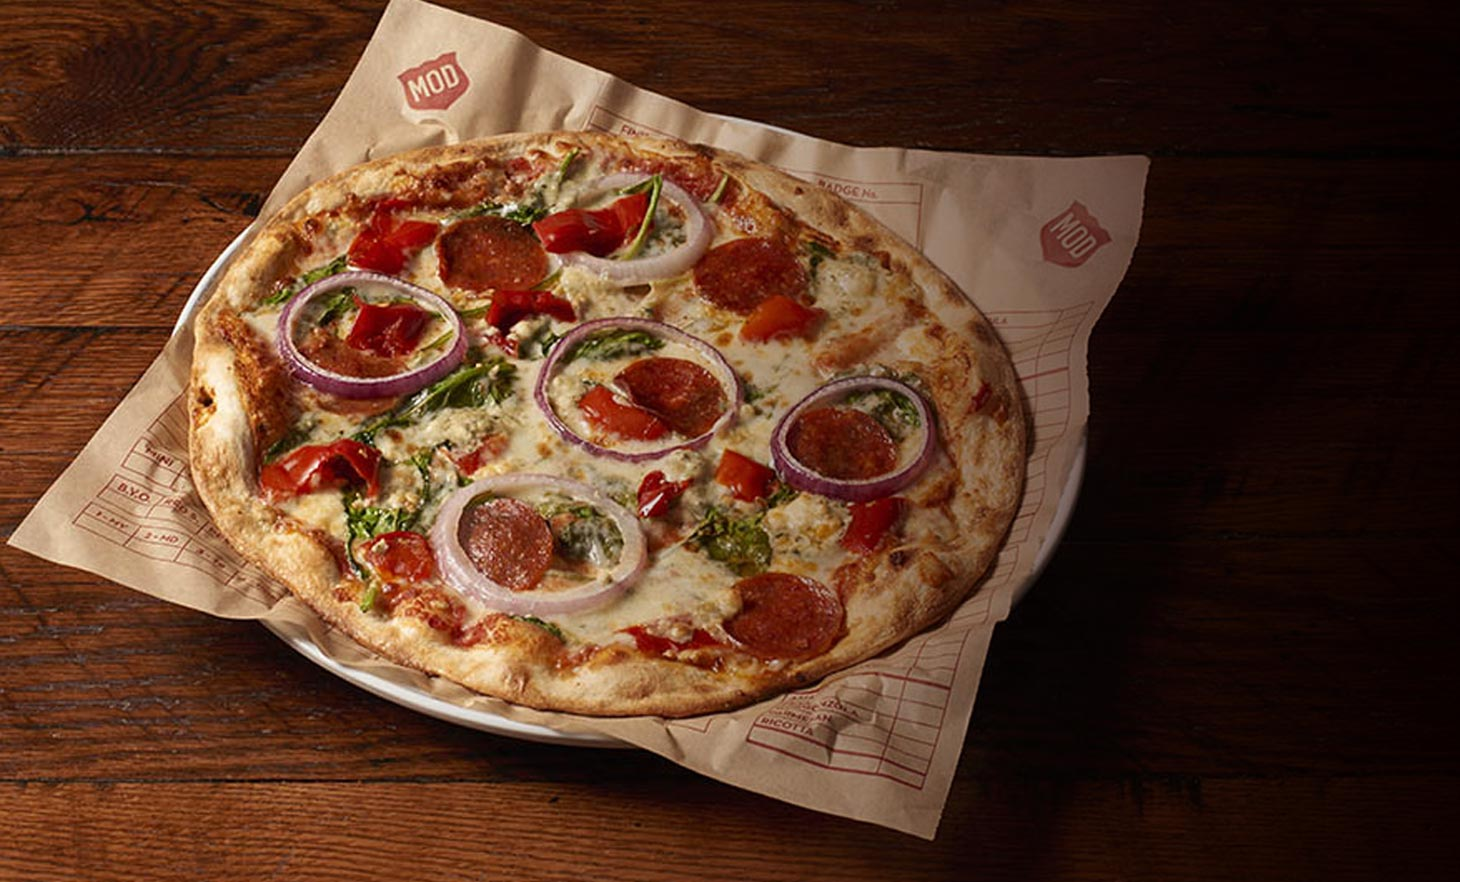 Mod Pizza Riverdale MD Open